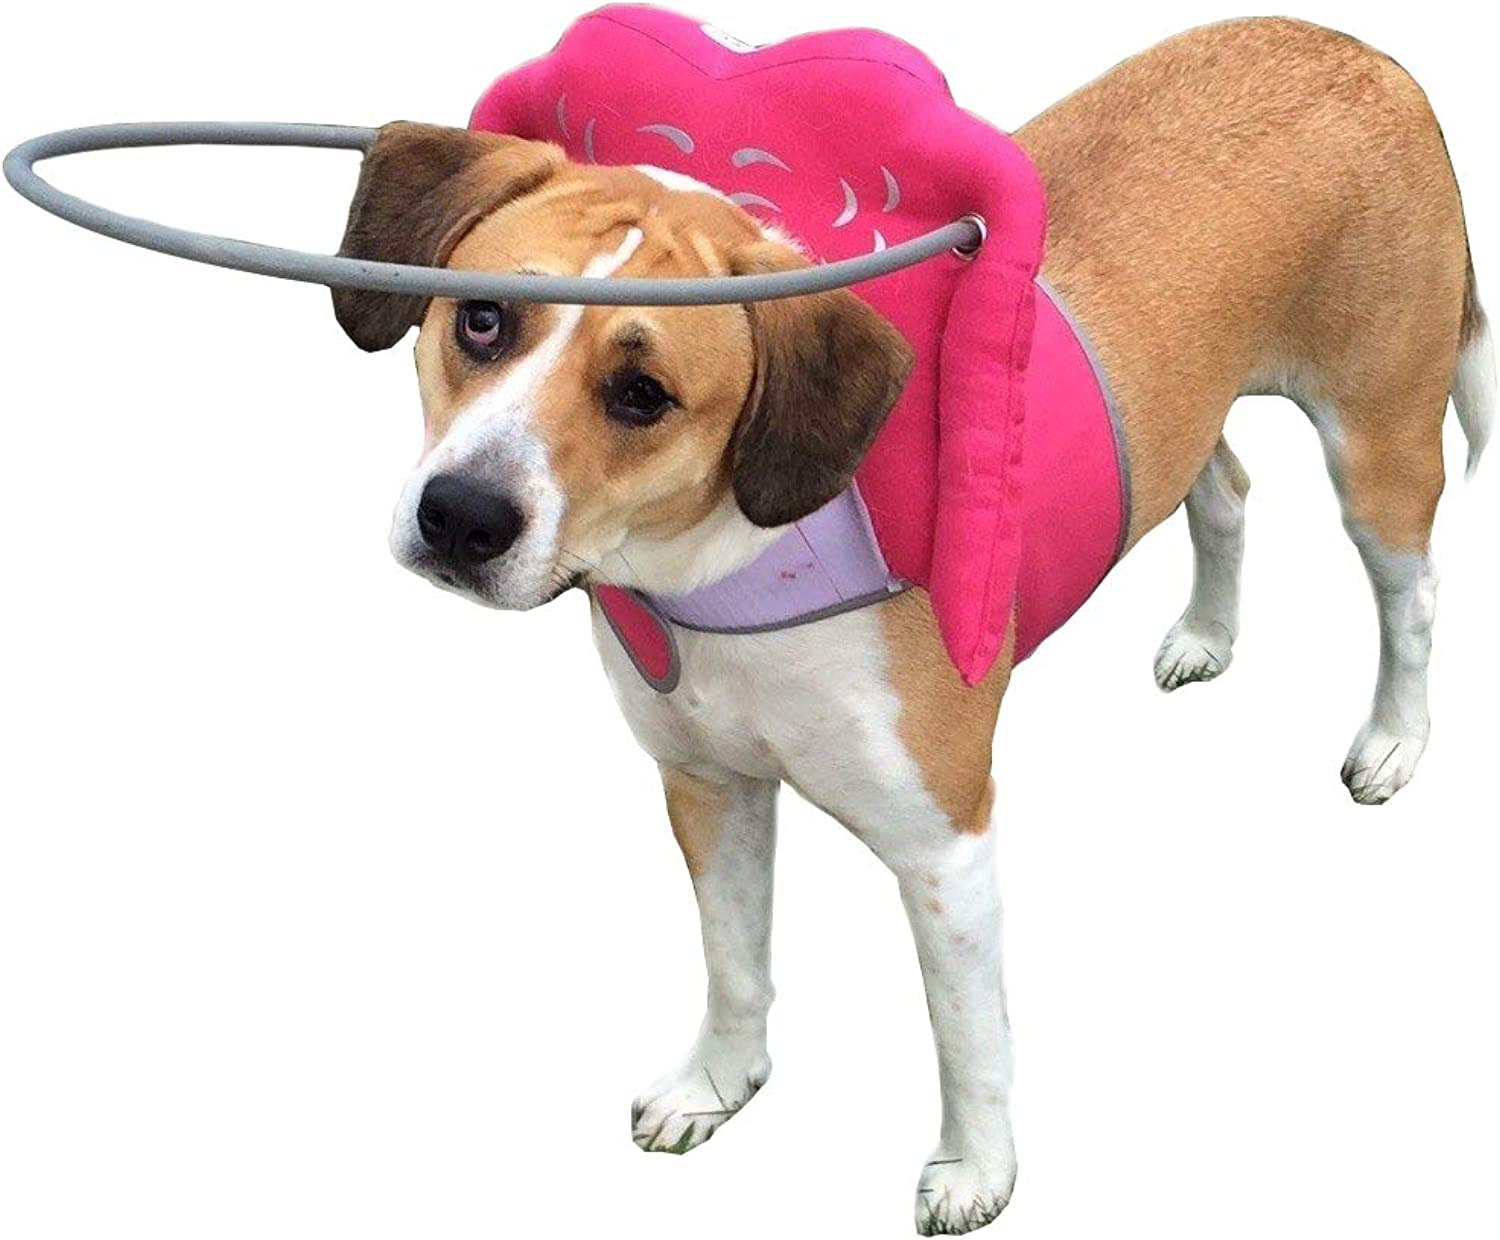 Muffin's Halo Blind Dog Harness Guide Device – Help for Blind Dogs or Visually Impaired Pets to Avoid Accidents & Build Confidence – Ideal Blind Dog Accessory To Navigate Surroundings – Pink Medium